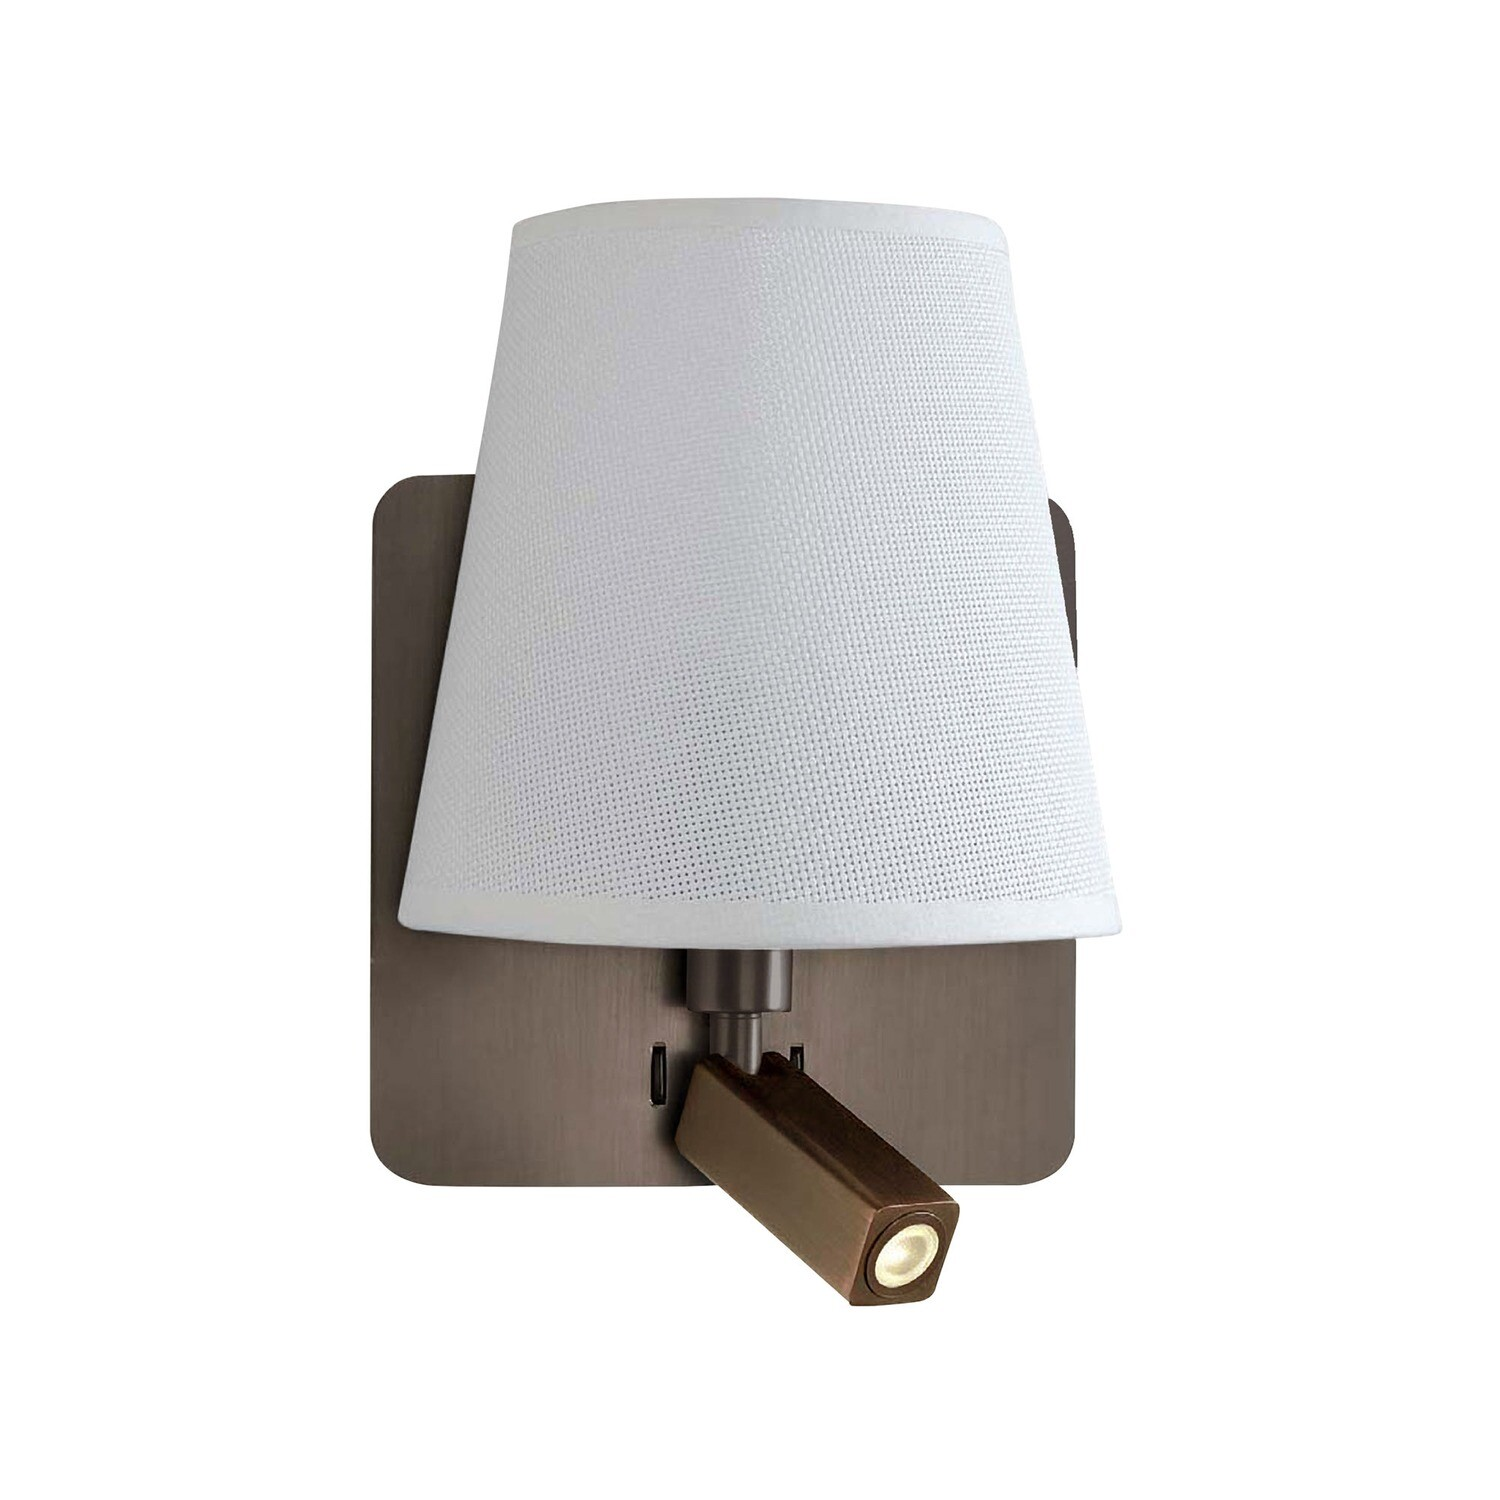 Bahia Wall Lamp With Large Back Plate 1 Light E27 + Reading Light 3W LED With White Shade Bronze 4000K, 200lm